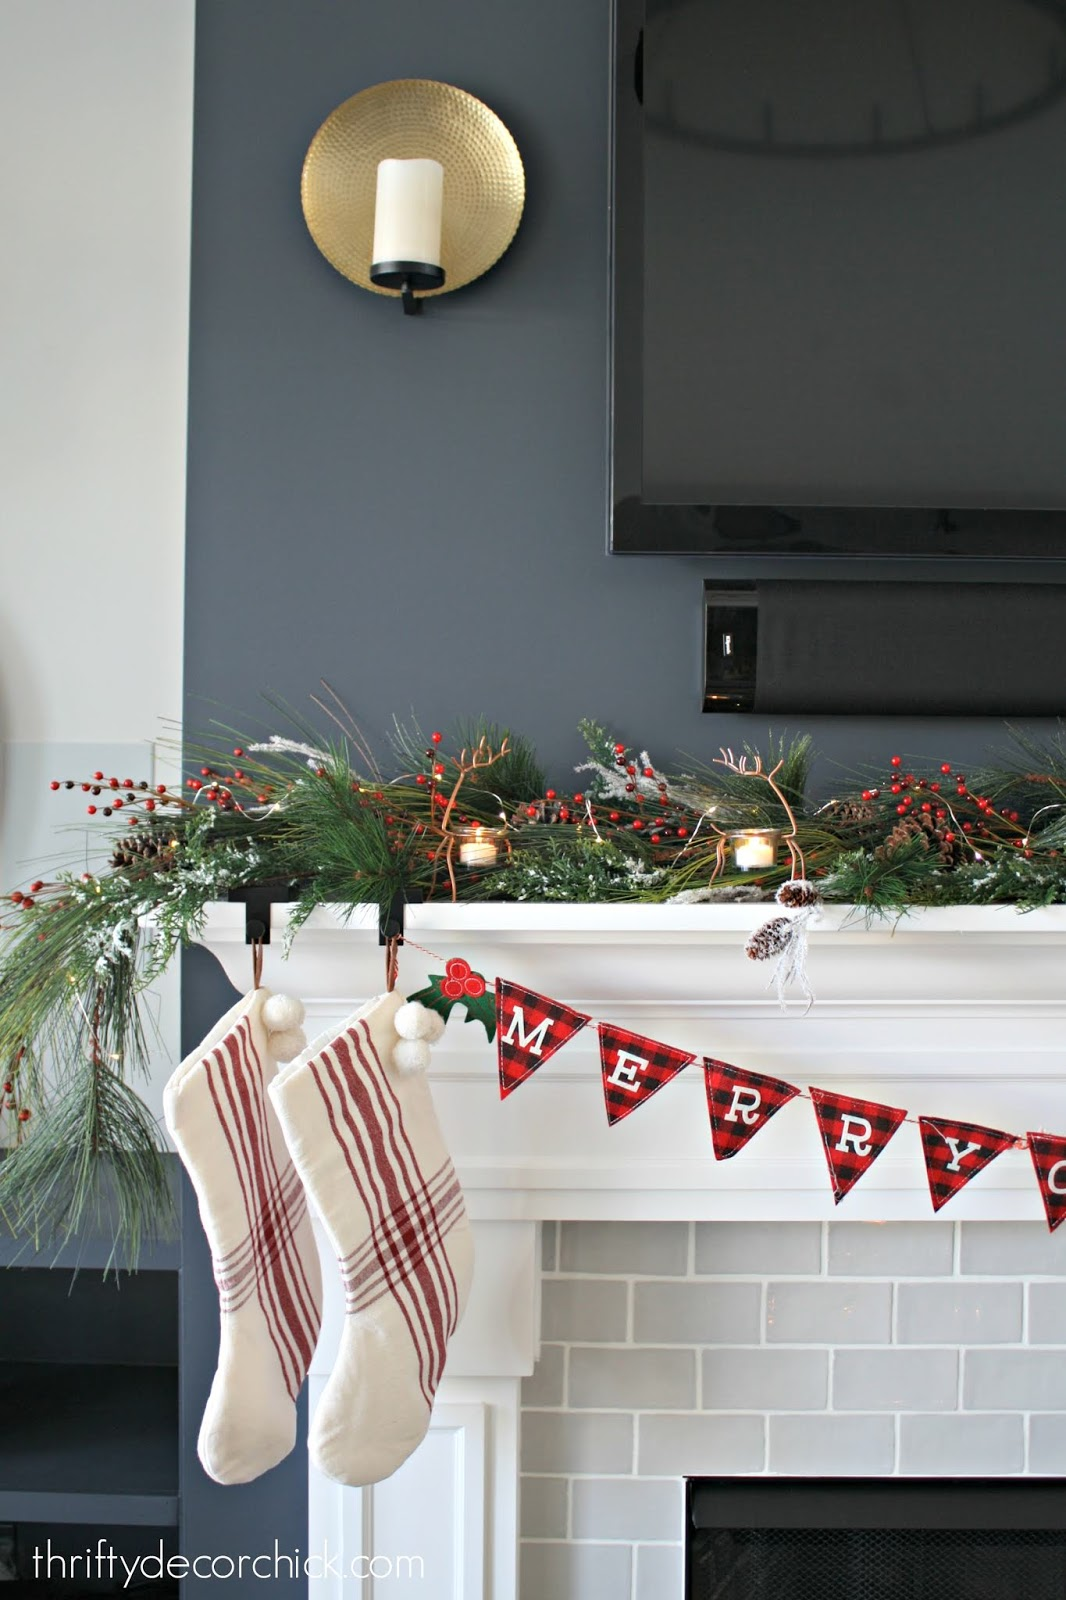 Faux greenery with berries on mantel